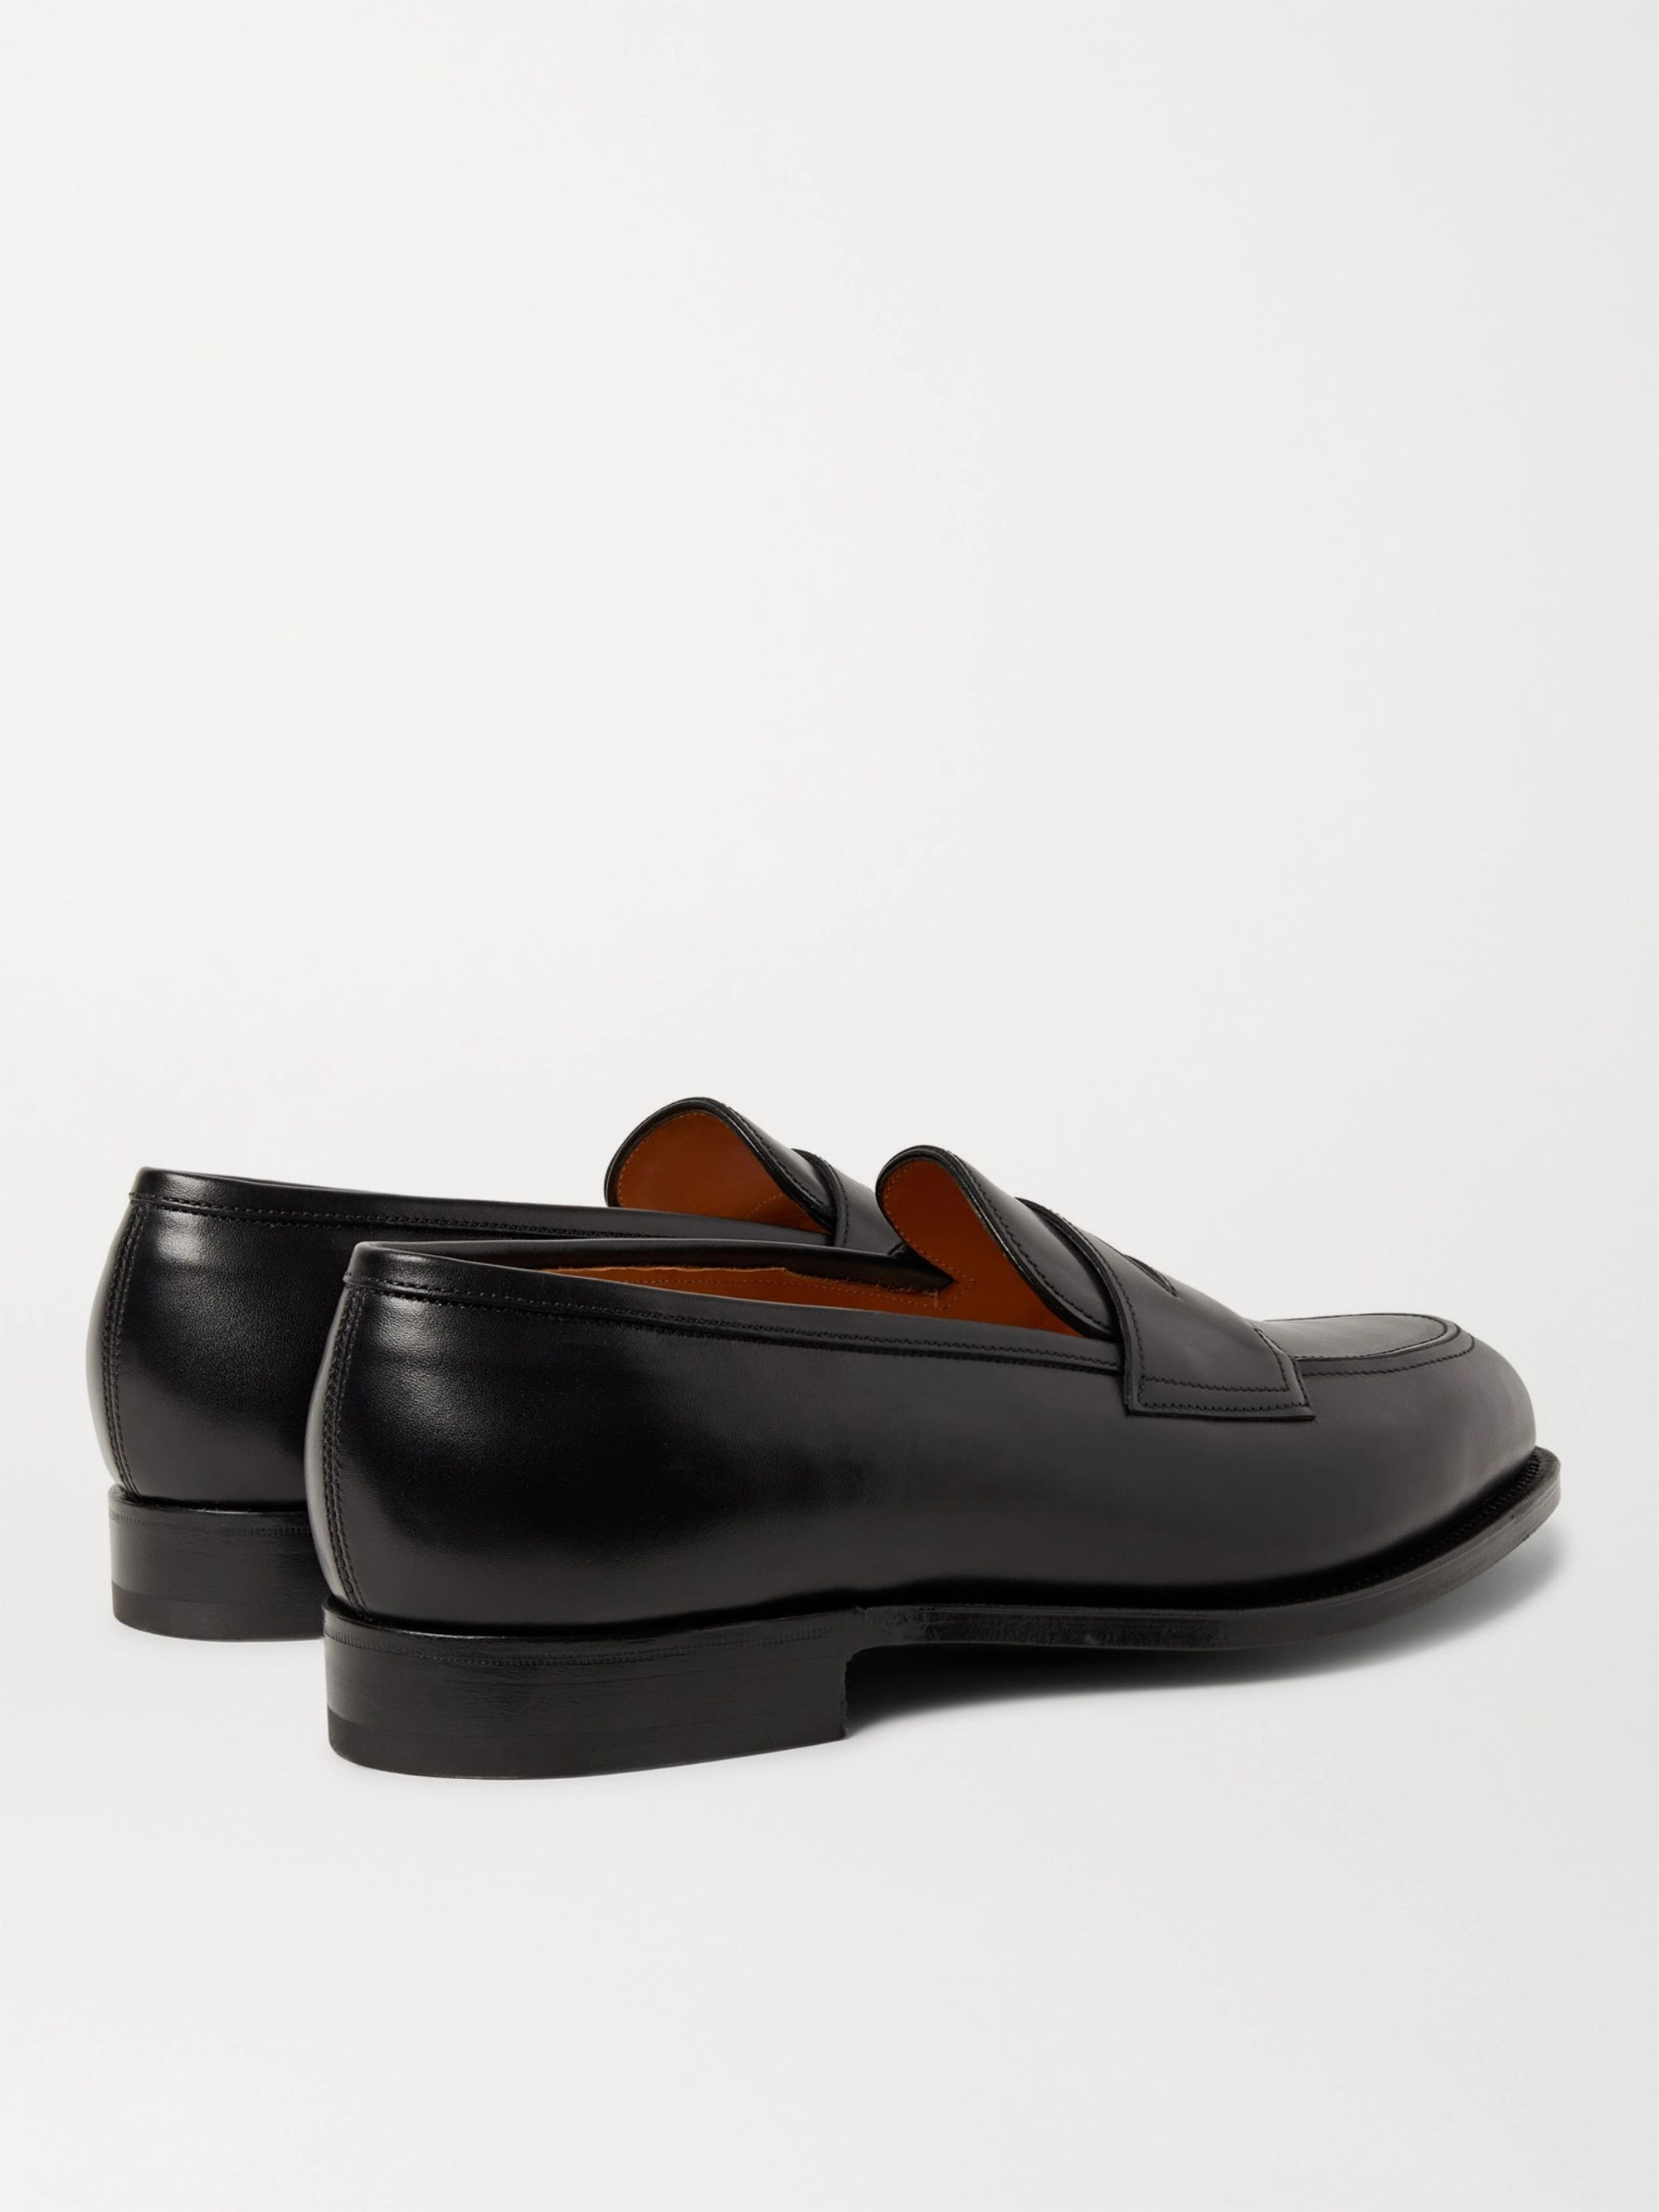 EDWARD GREEN Piccadilly Leather-Trimmed Suede Penny Loafers